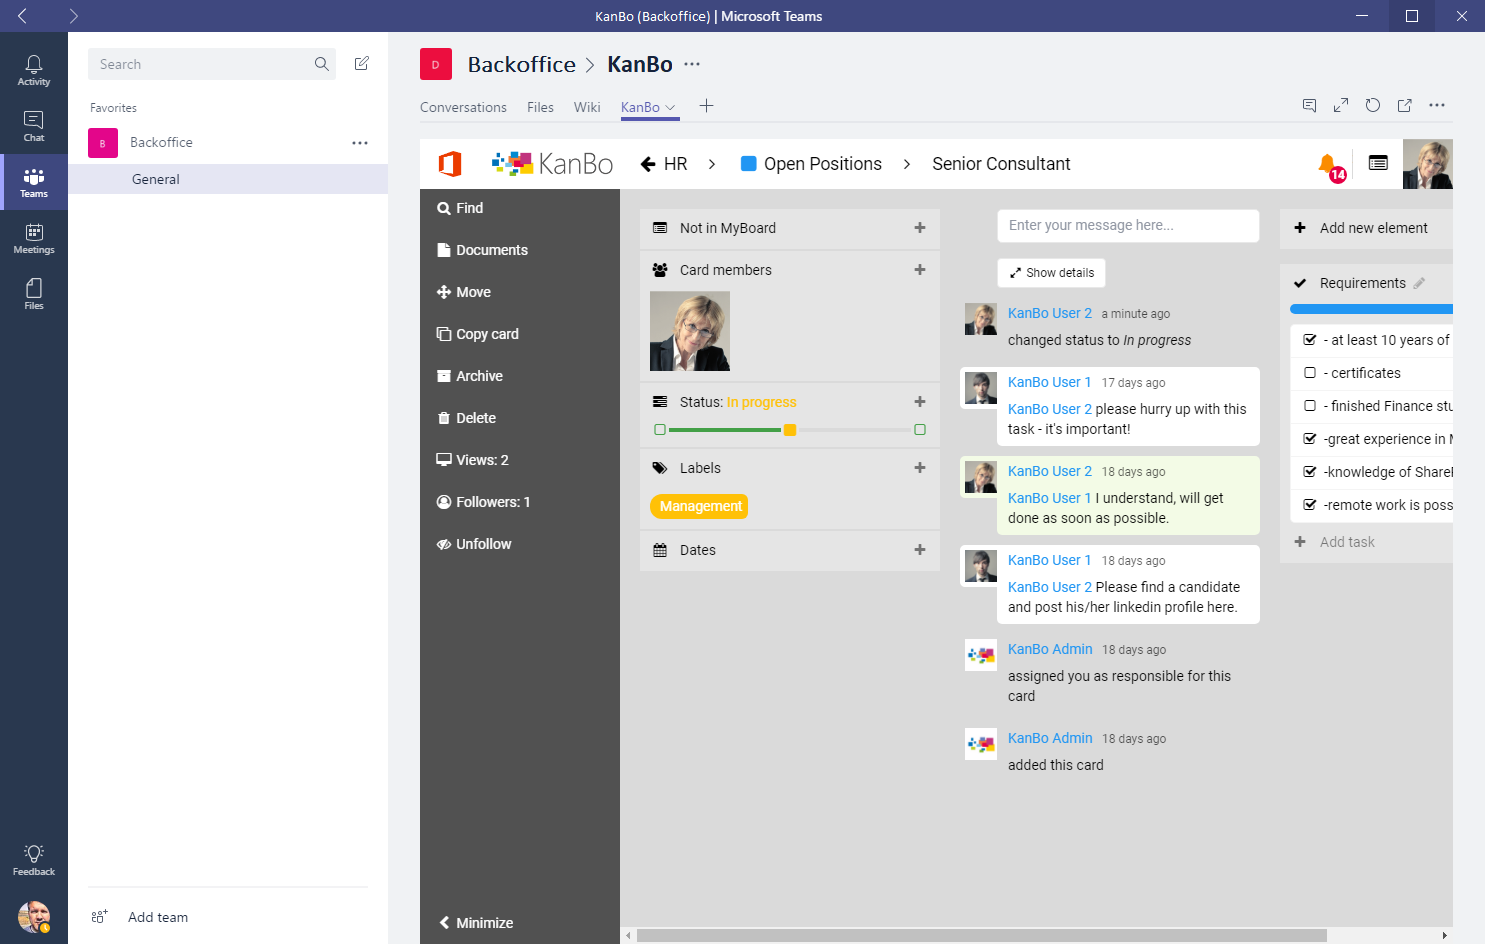 KanBo for Microsoft Teams